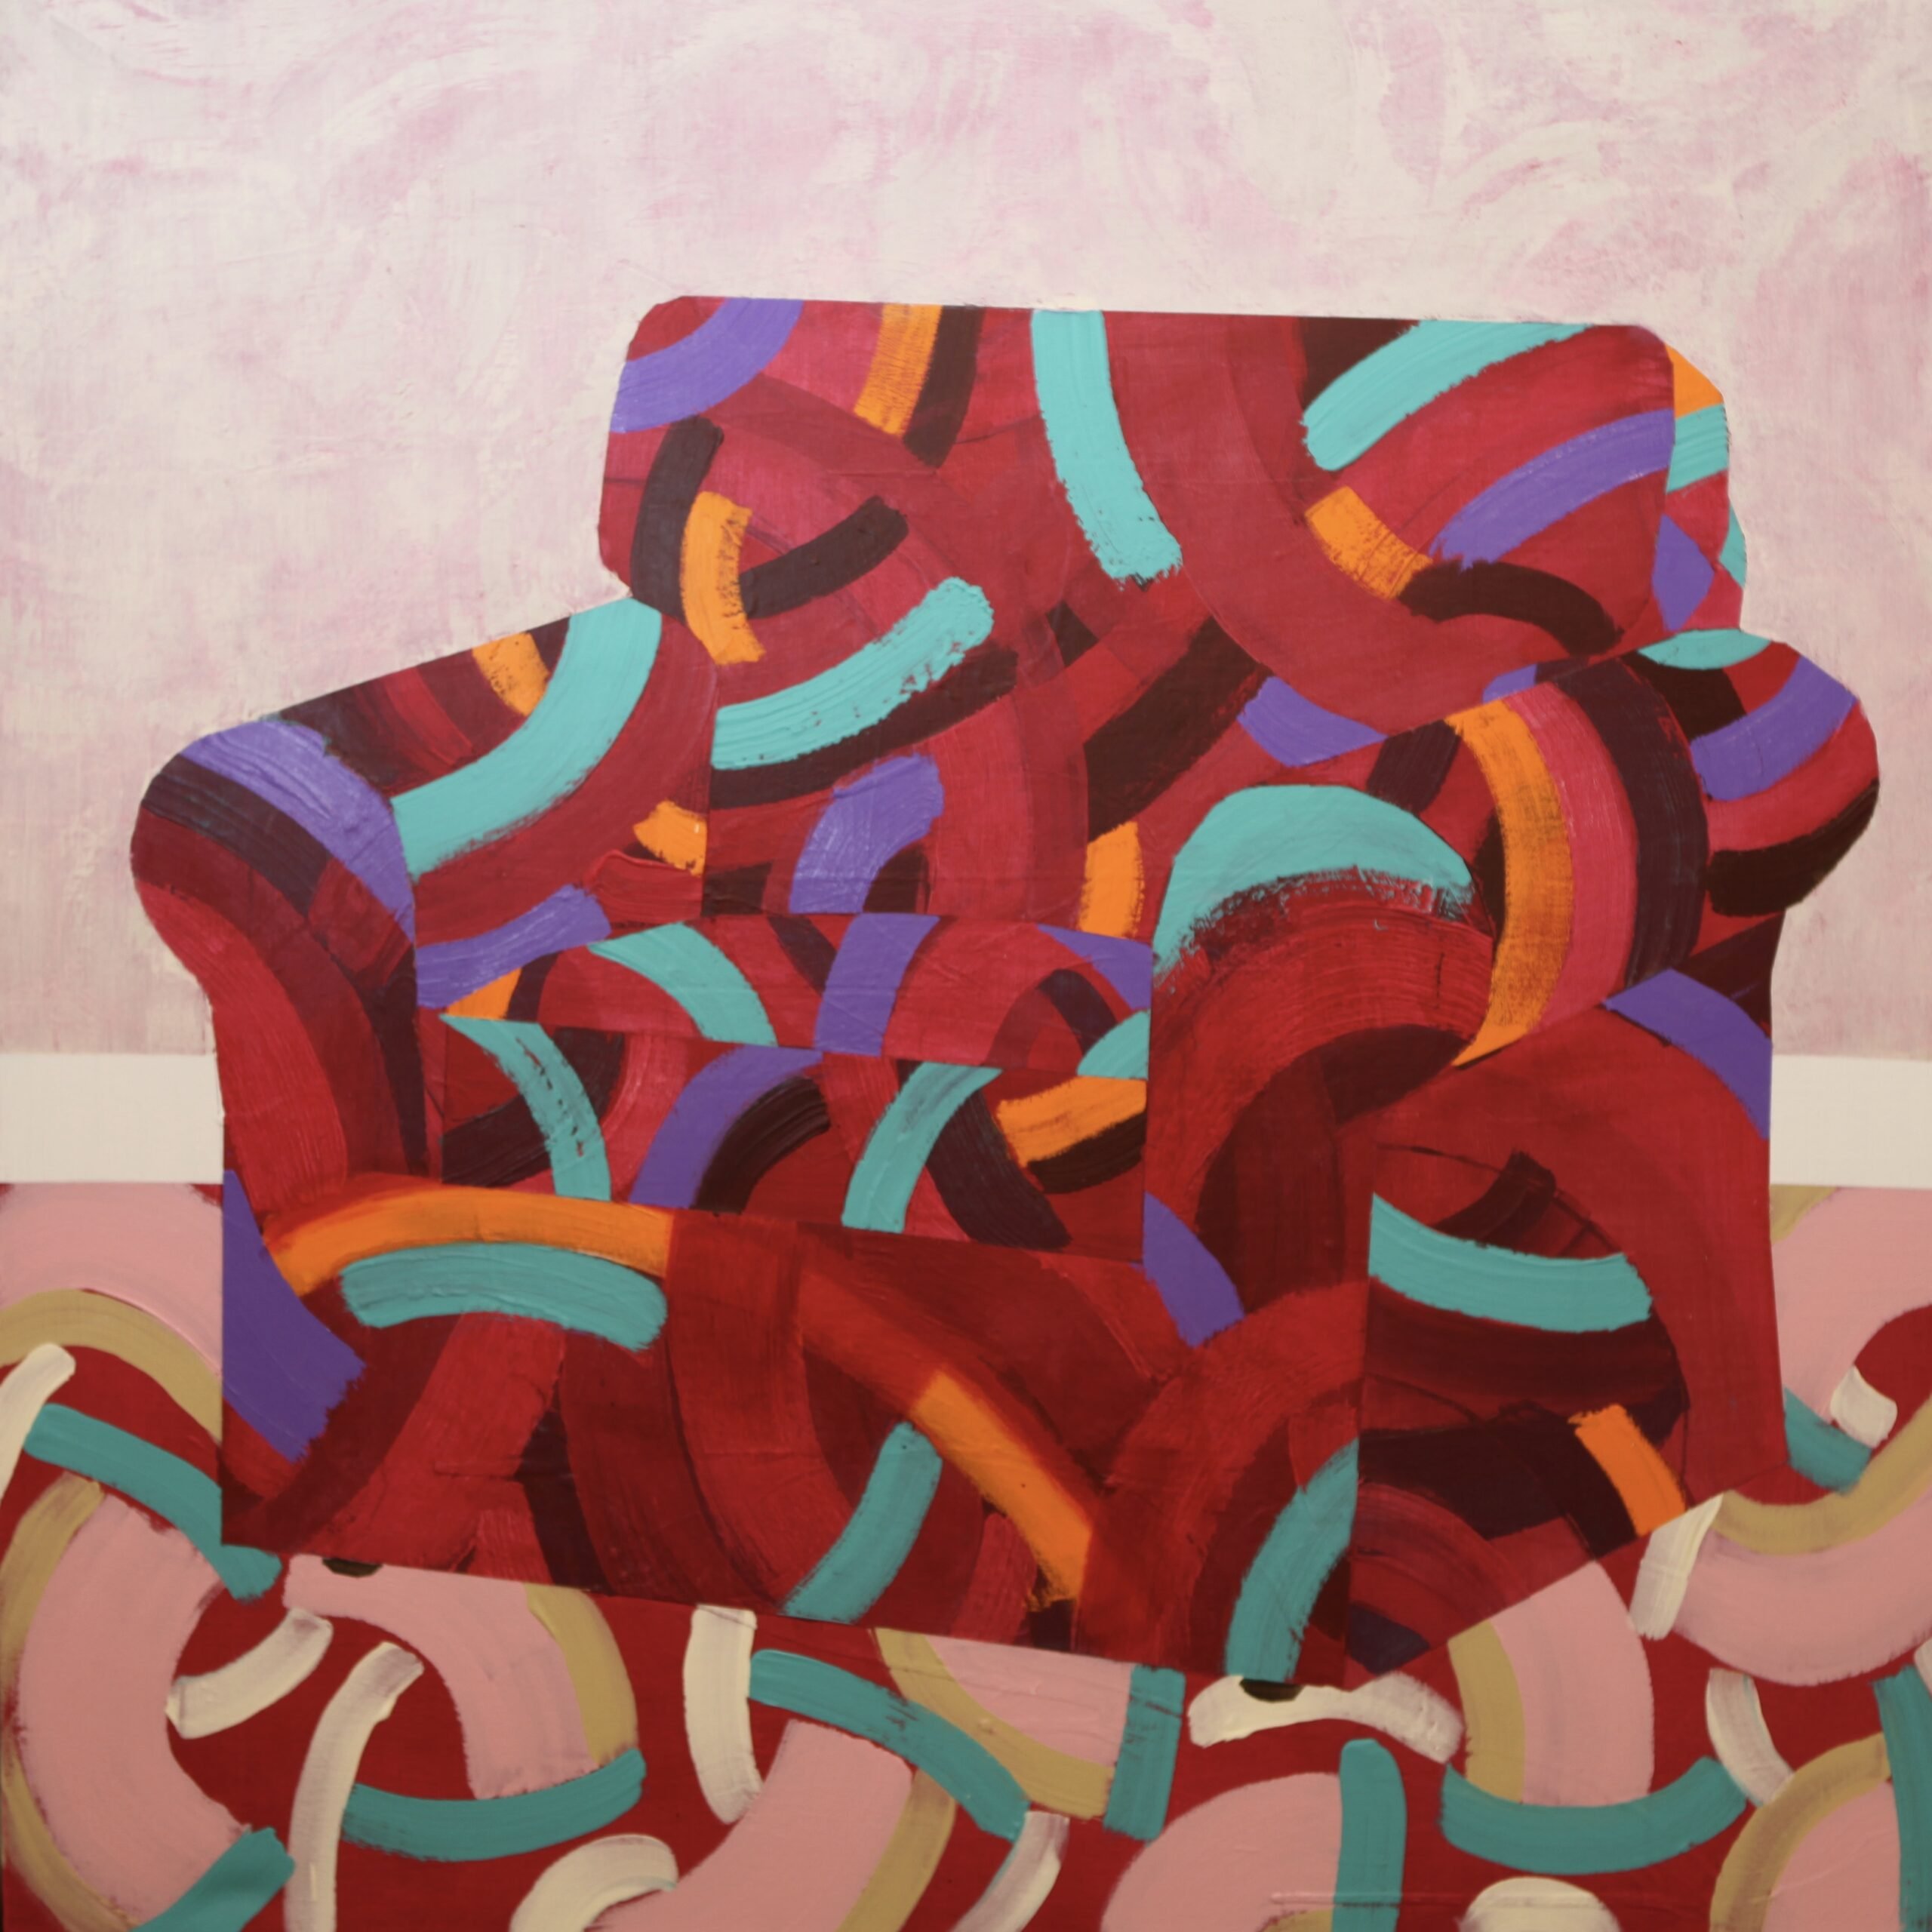 Red Chair. Charles Inge. Jackson's Painting Prize.